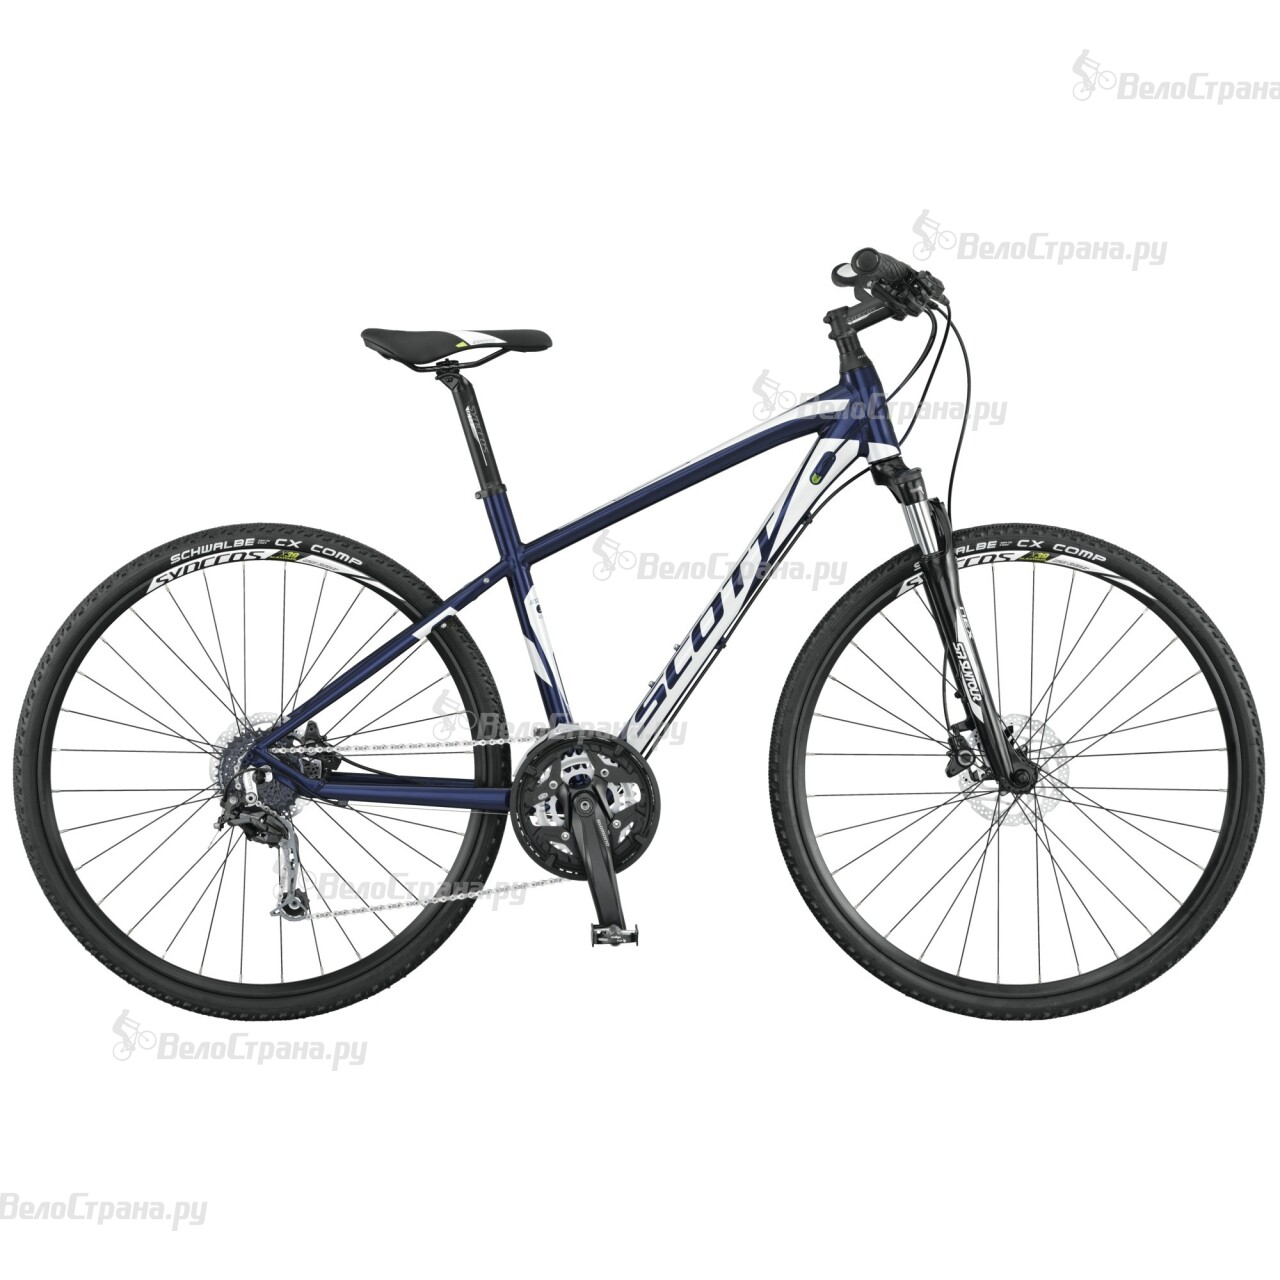 Велосипед Scott Sportster 30 Solution (2015) scott joplin ноты в спб